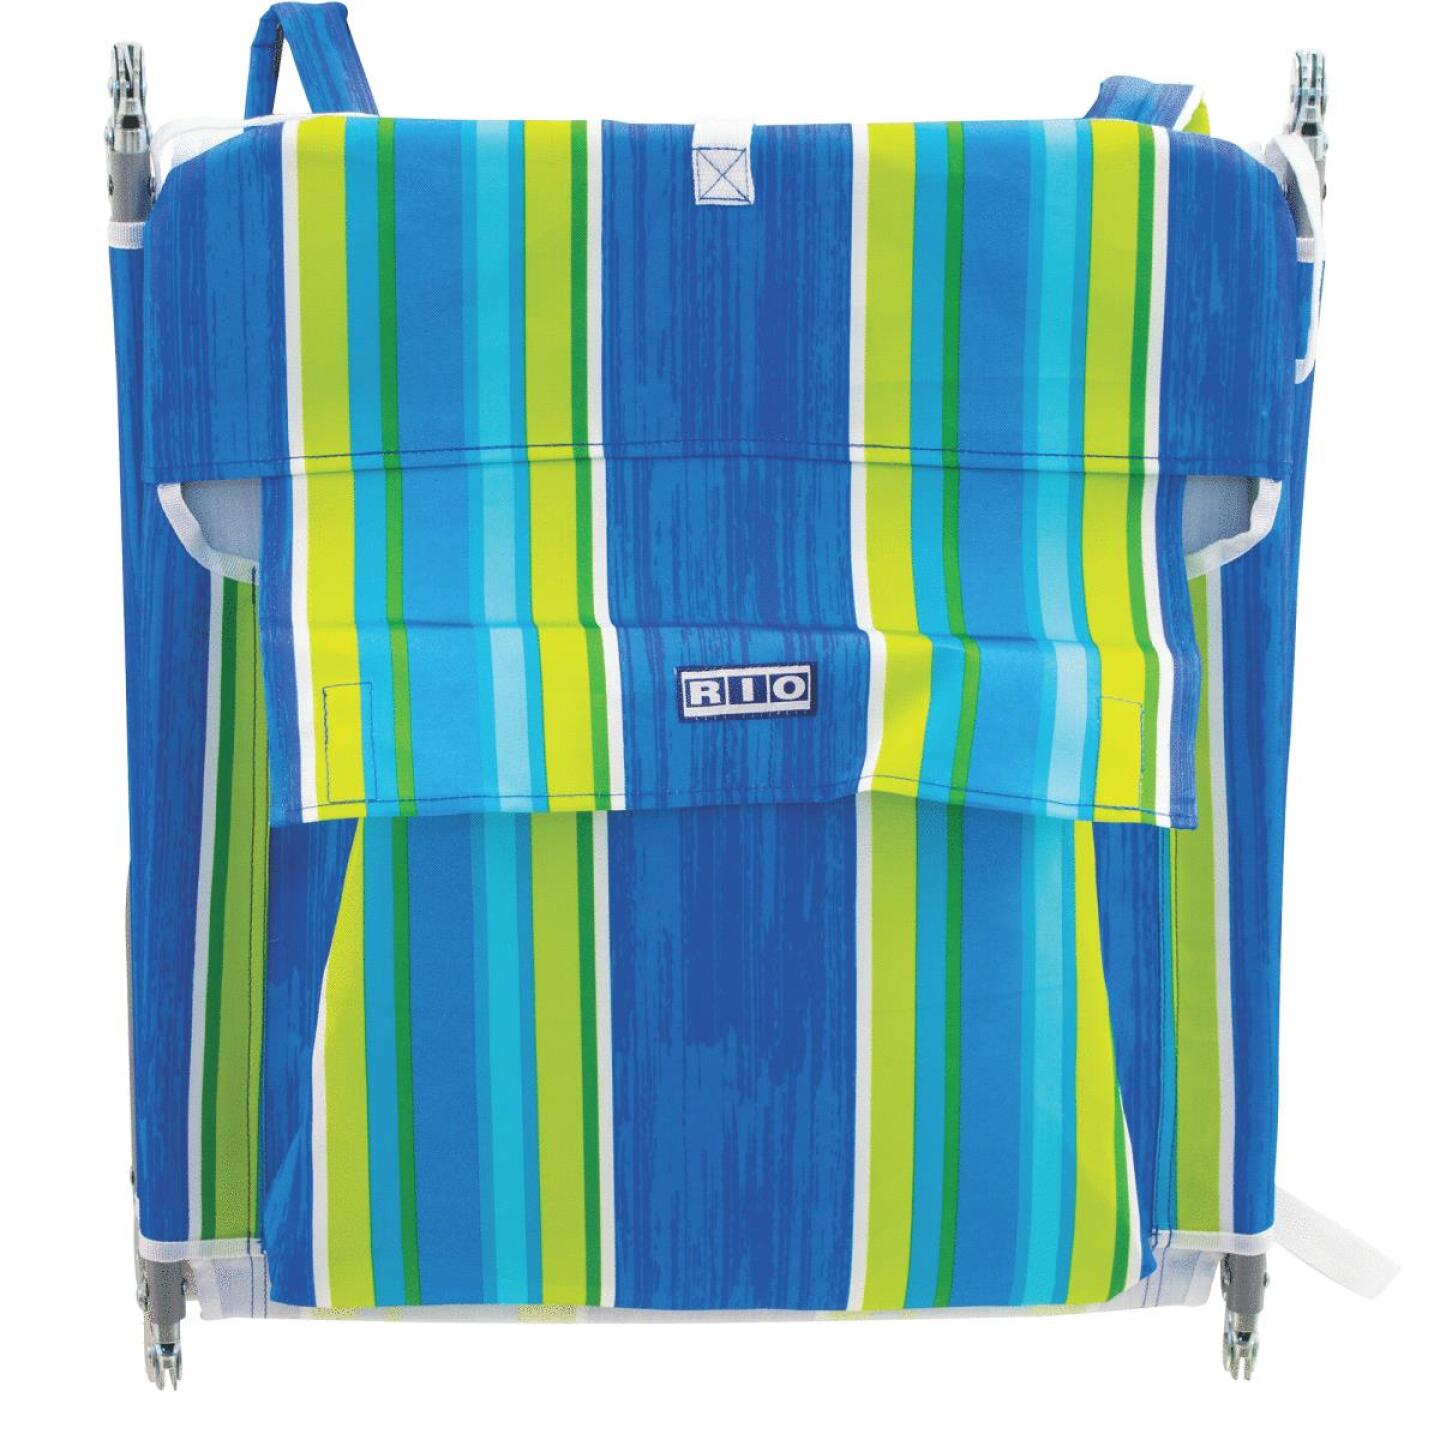 Rio Brands Beach Multiple-Position Blue & Green Striped Steel Folding Backpack Lounger Image 1